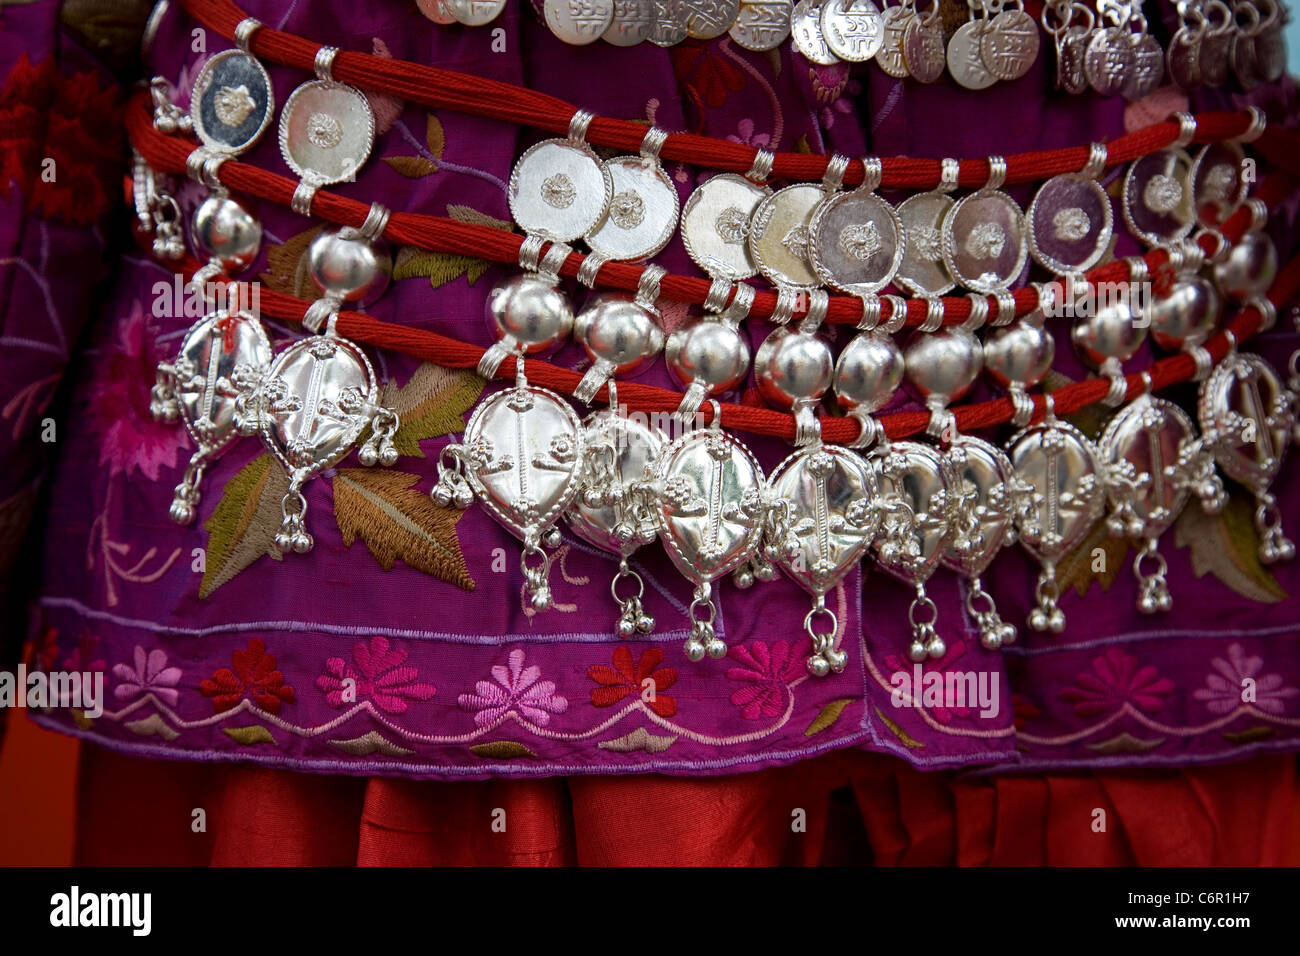 Silver bells belted around Indian Costume - Stock Image